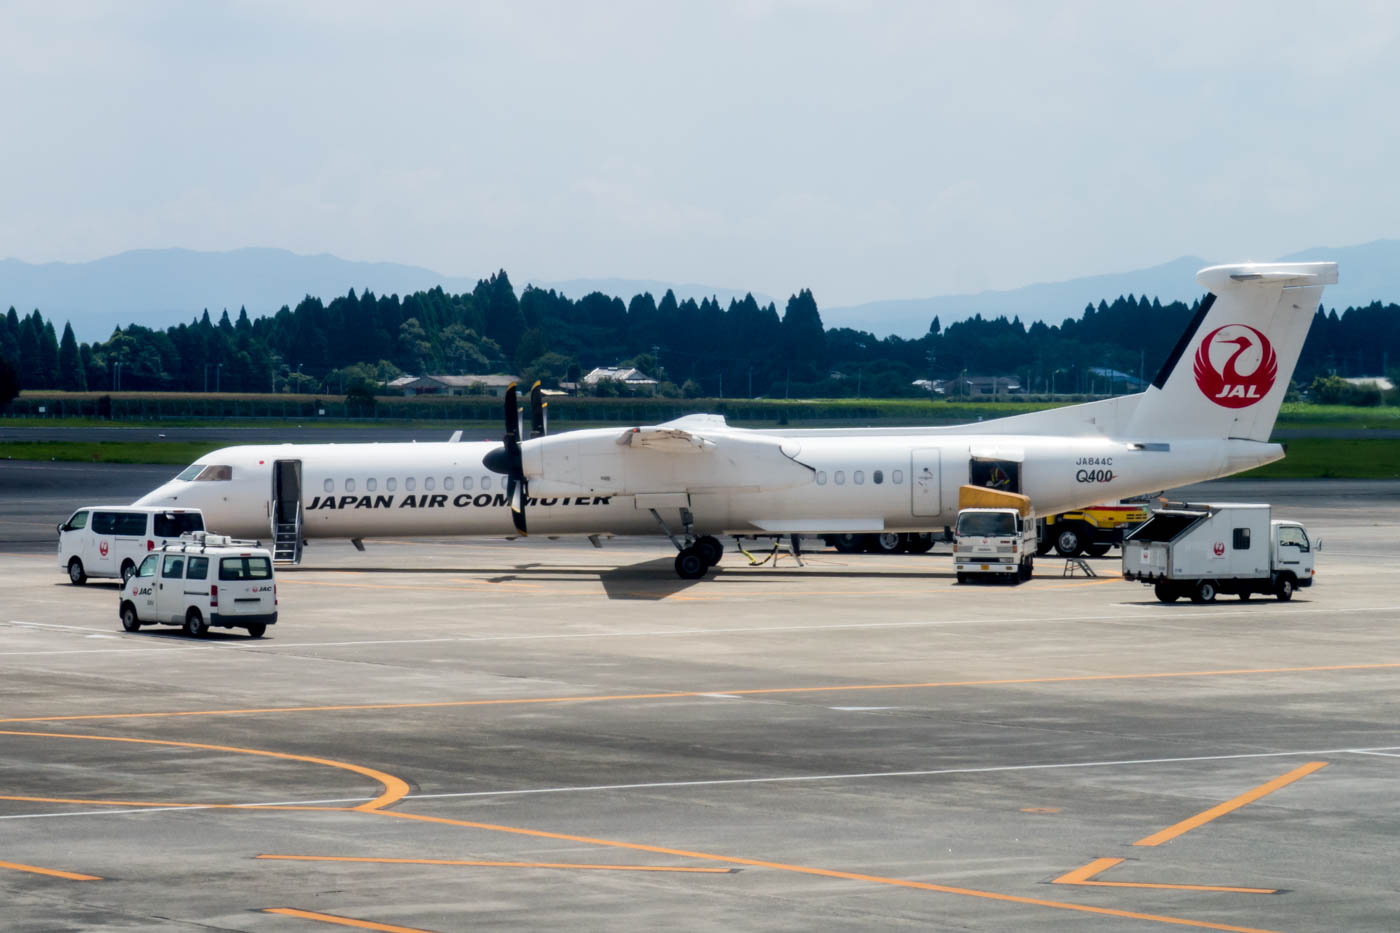 Japan Air Commuter Bombardier Dash 8 Q400 at Kagoshima Airport